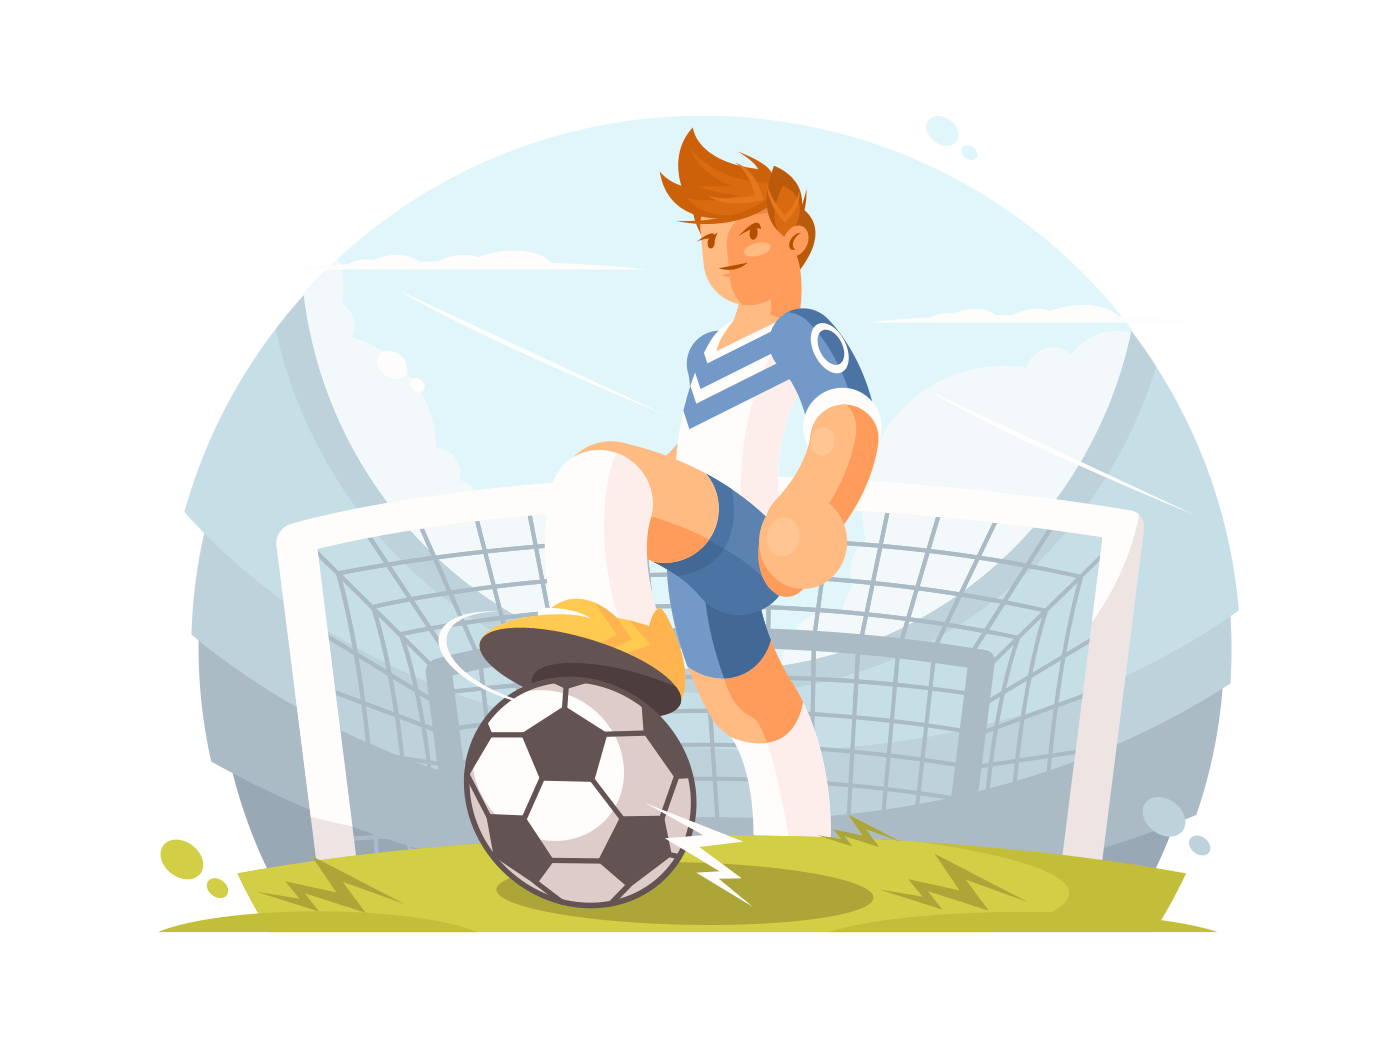 Cartoon character football player illustration